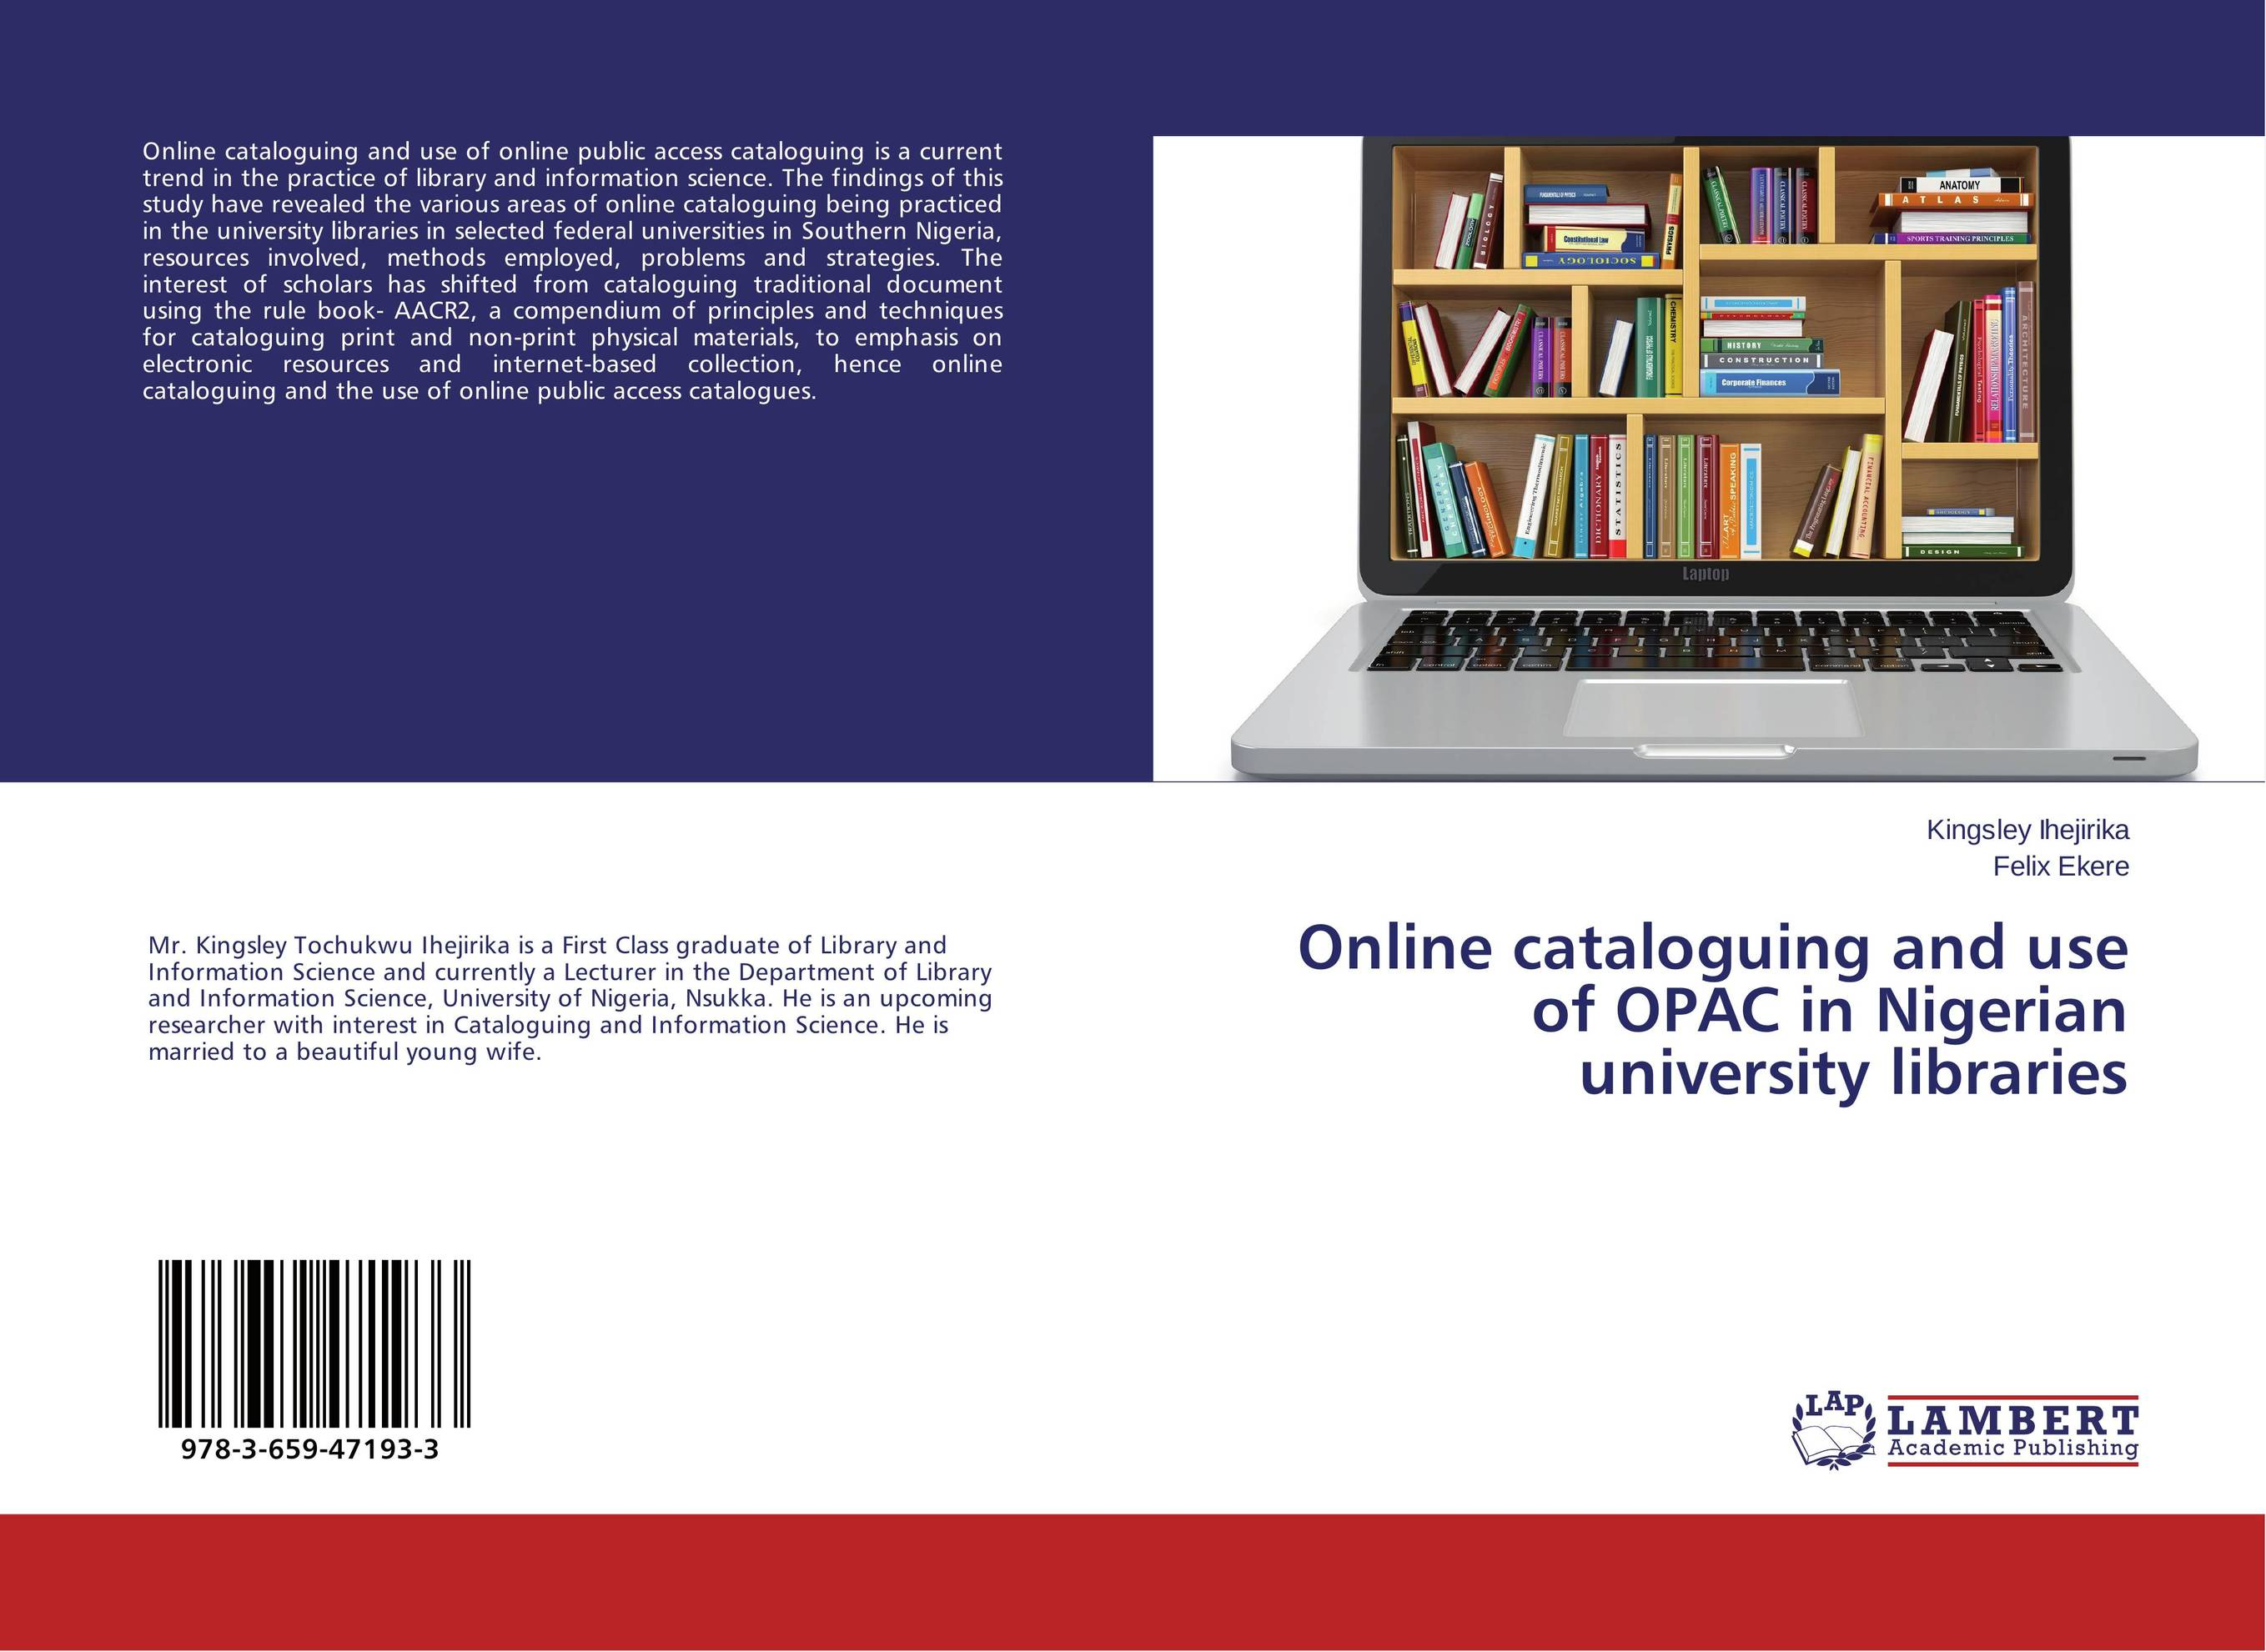 купить Online cataloguing and use of OPAC in Nigerian university libraries недорого